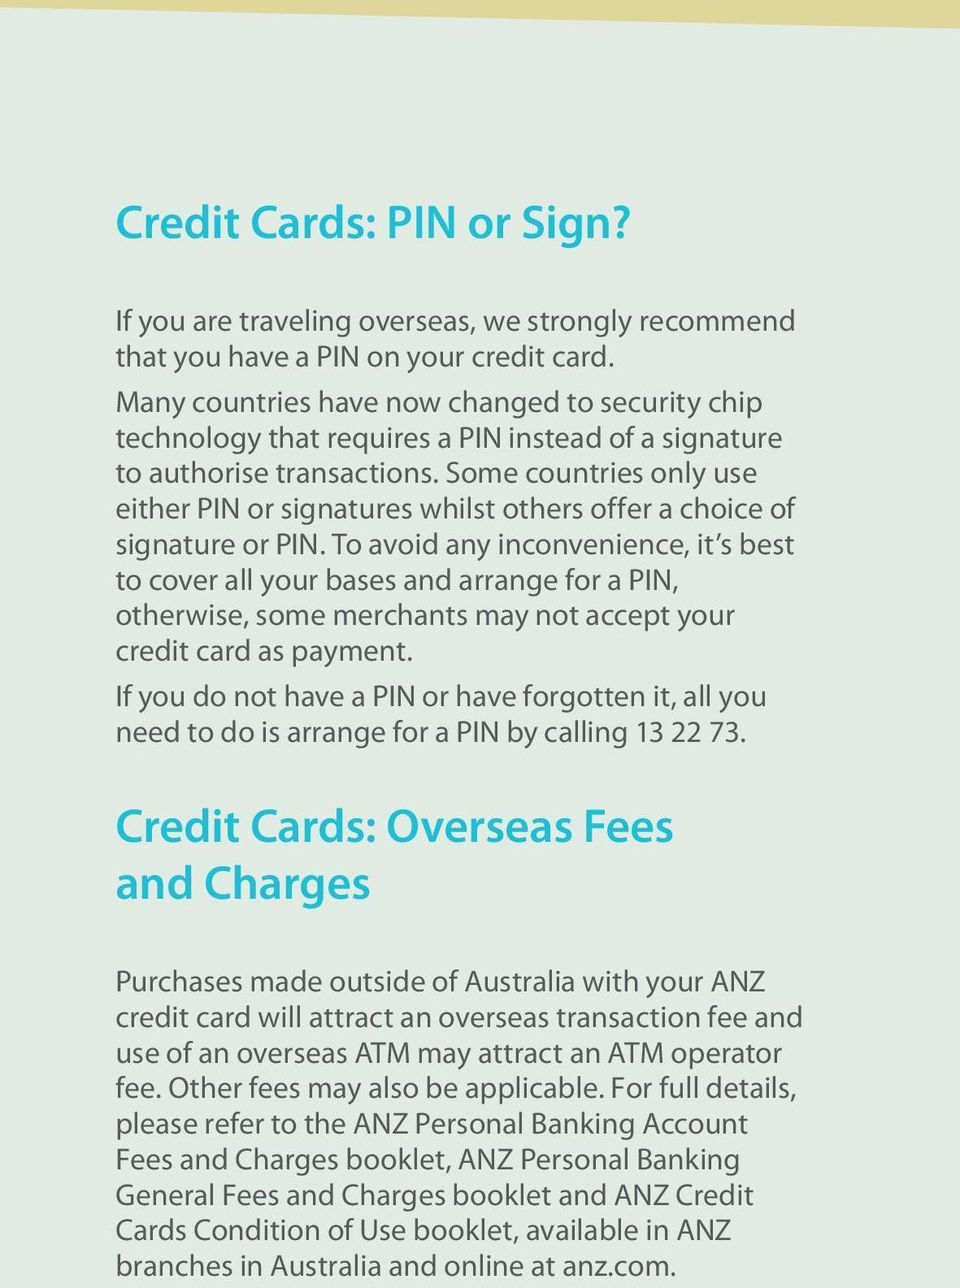 Some countries only use either PIN or signatures whilst others offer a choice of signature or PIN.